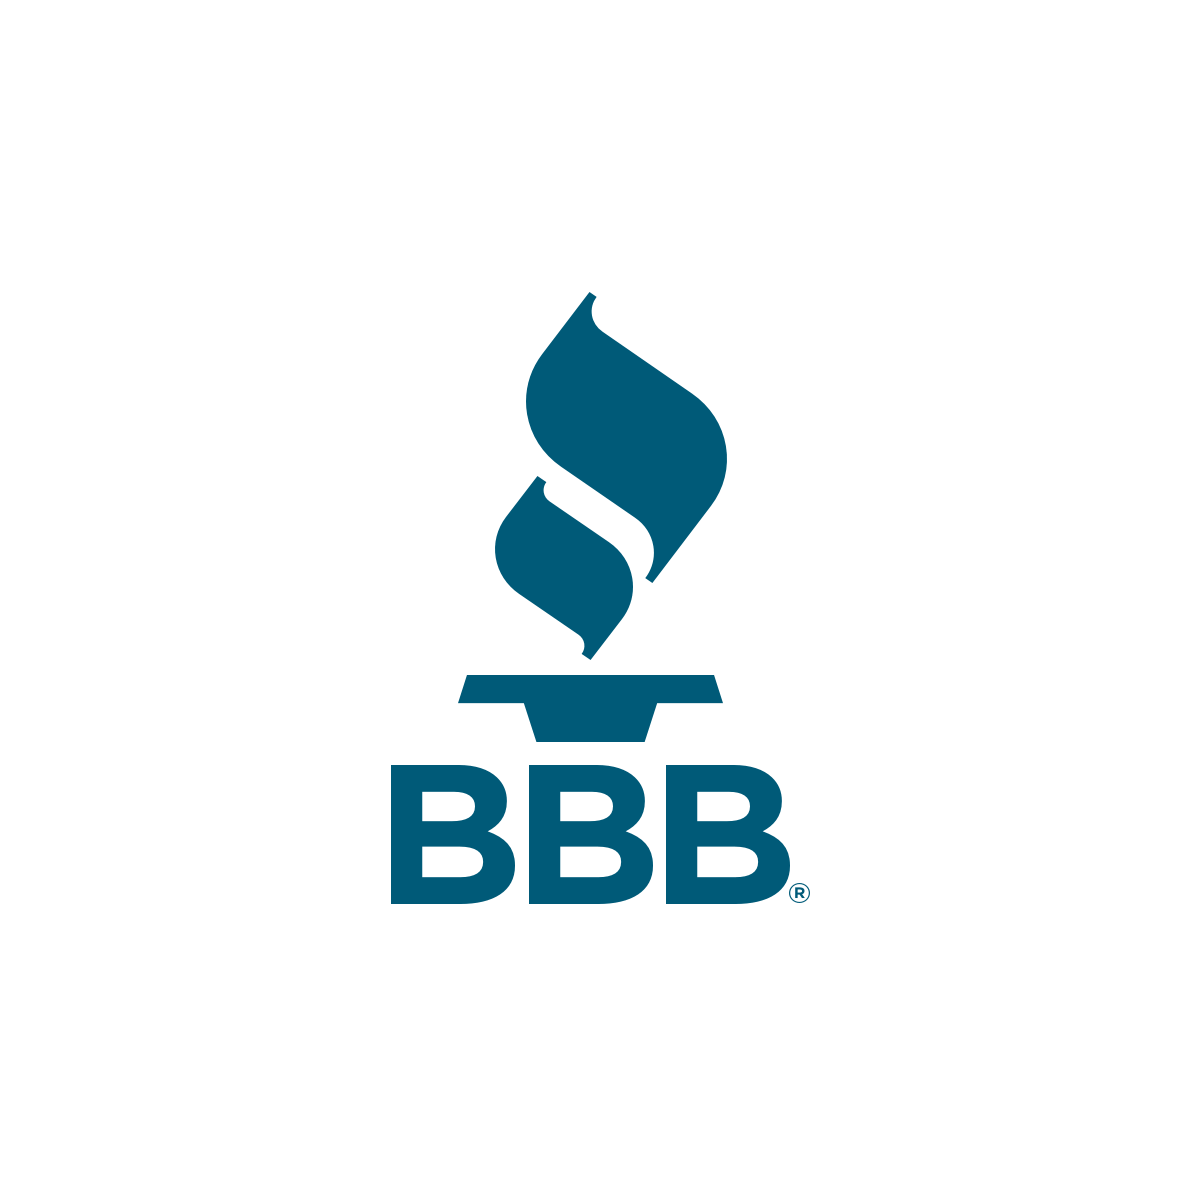 Better Business Bureau Emblem